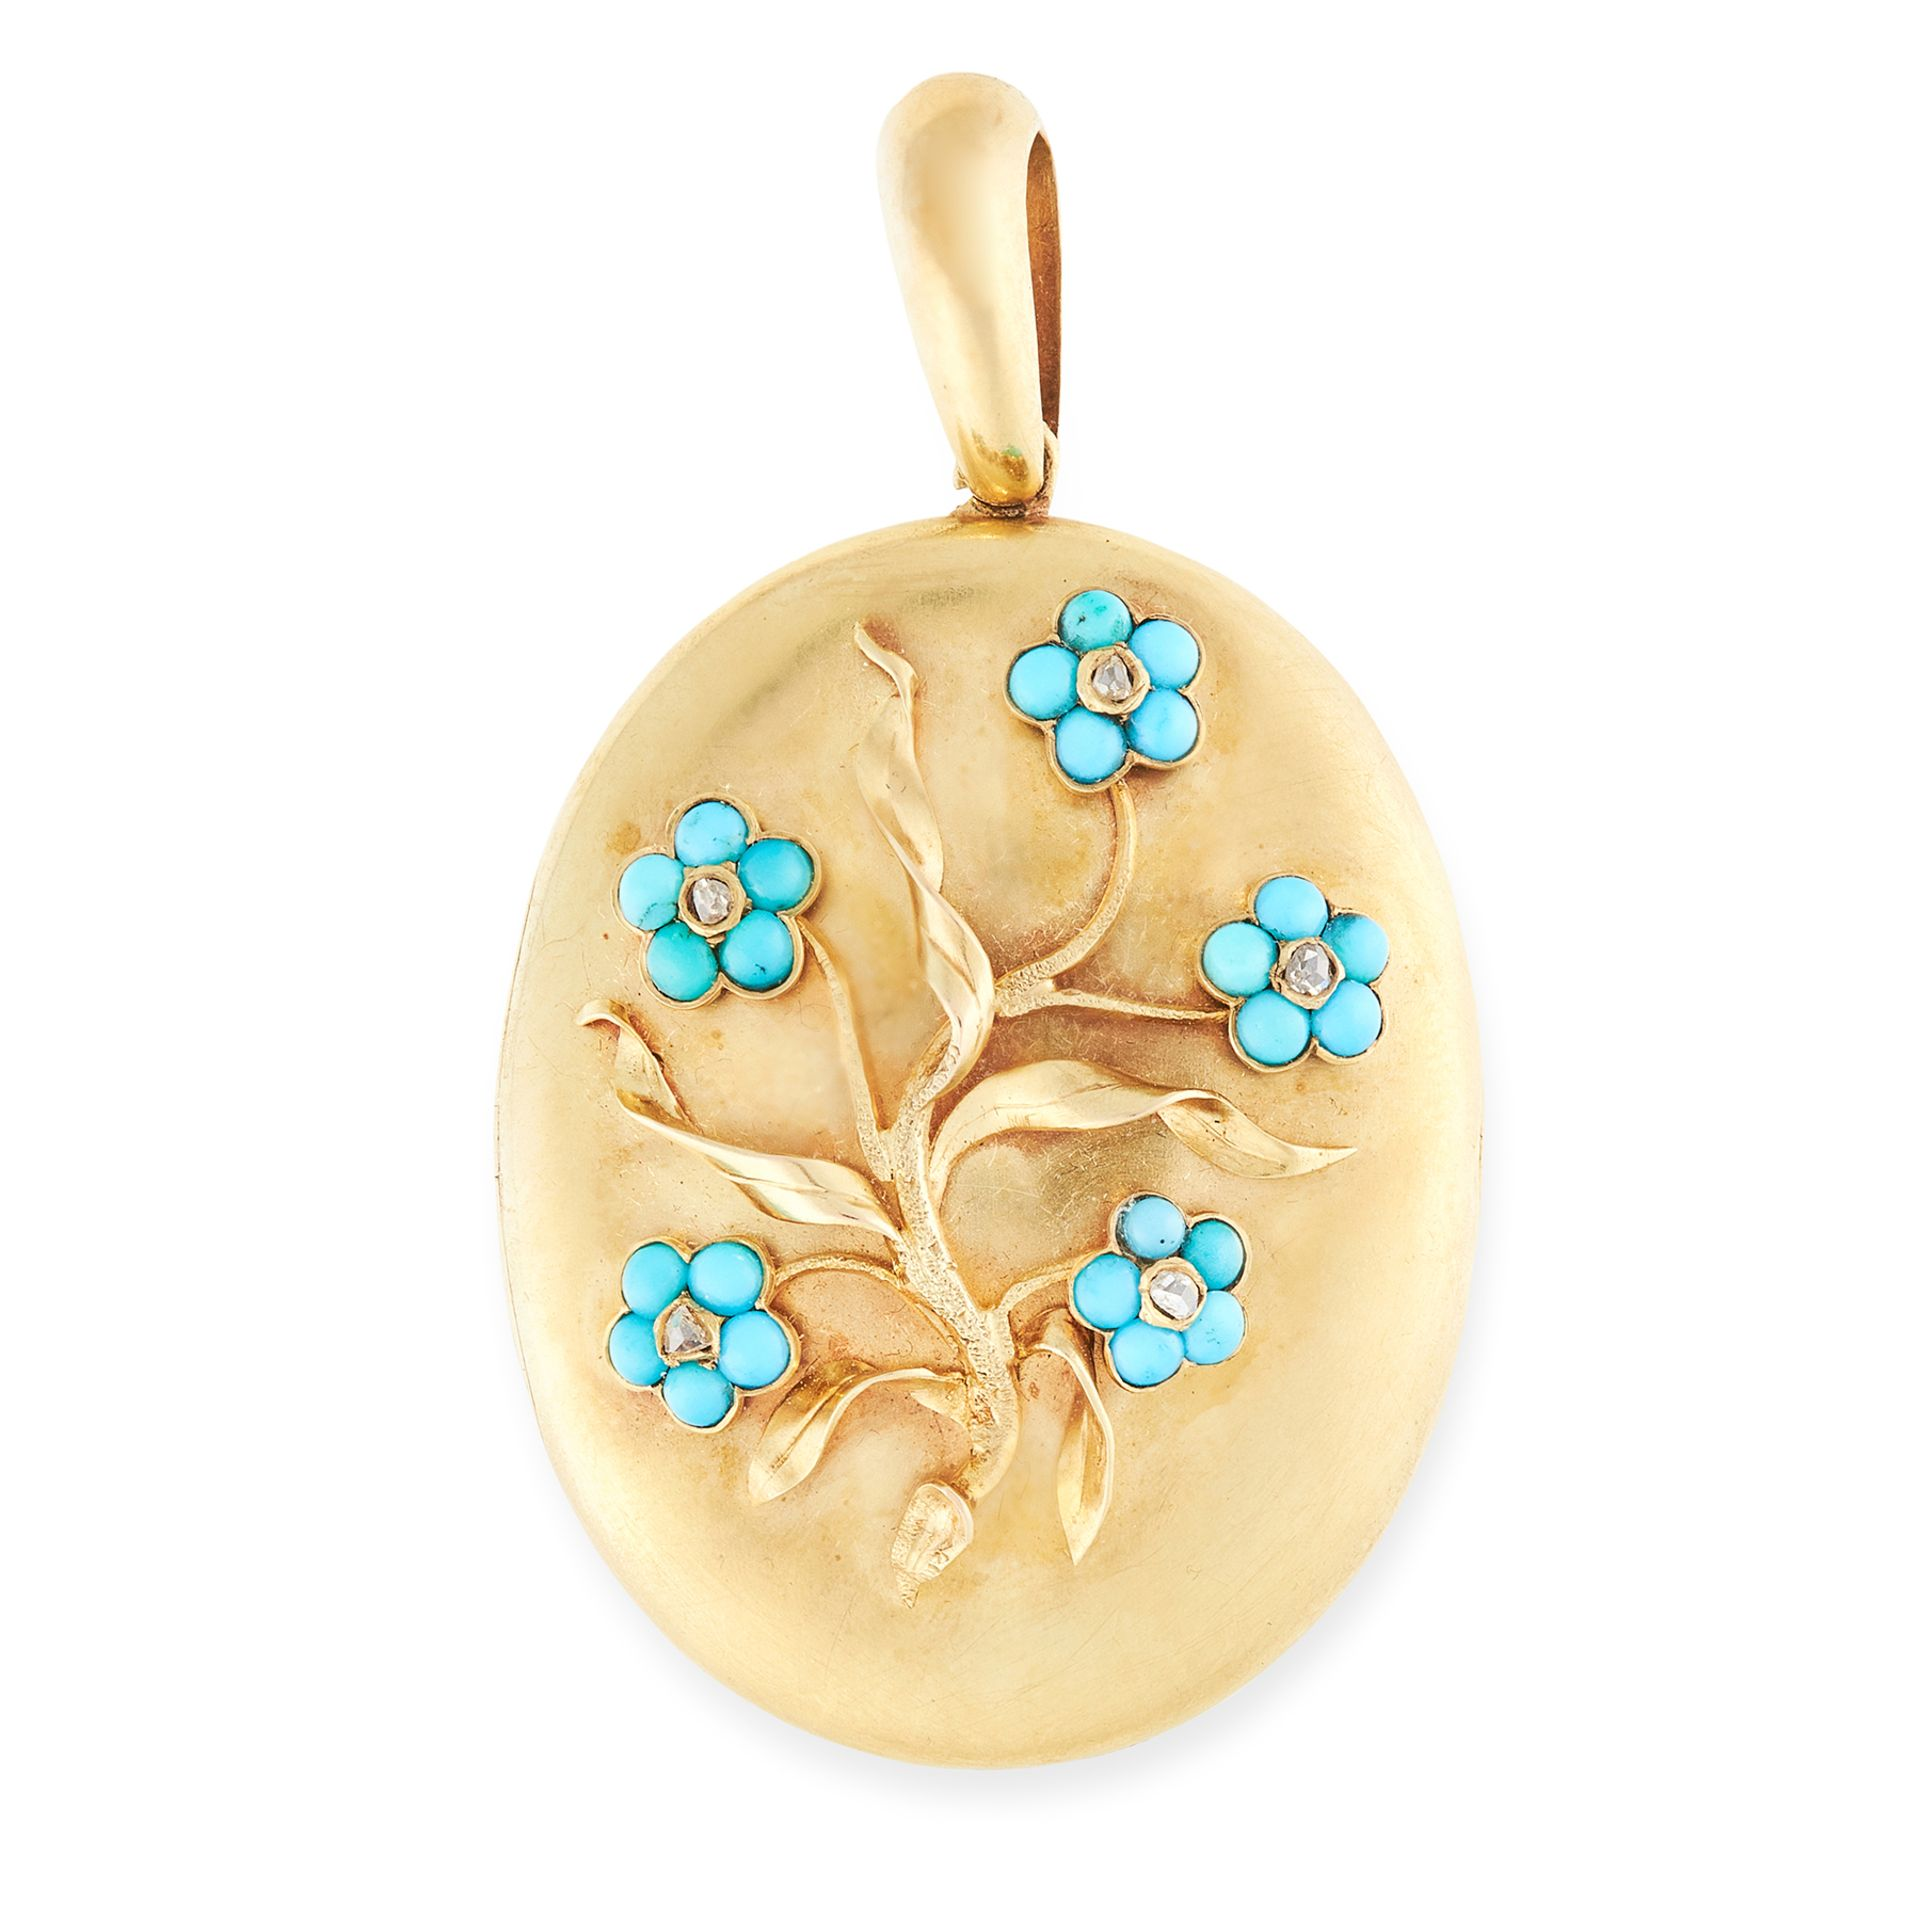 AN ANTIQUE TURQUOISE AND DIAMOND FORGET ME NOT MOURNING LOCKET PENDANT in yellow gold, the oval body